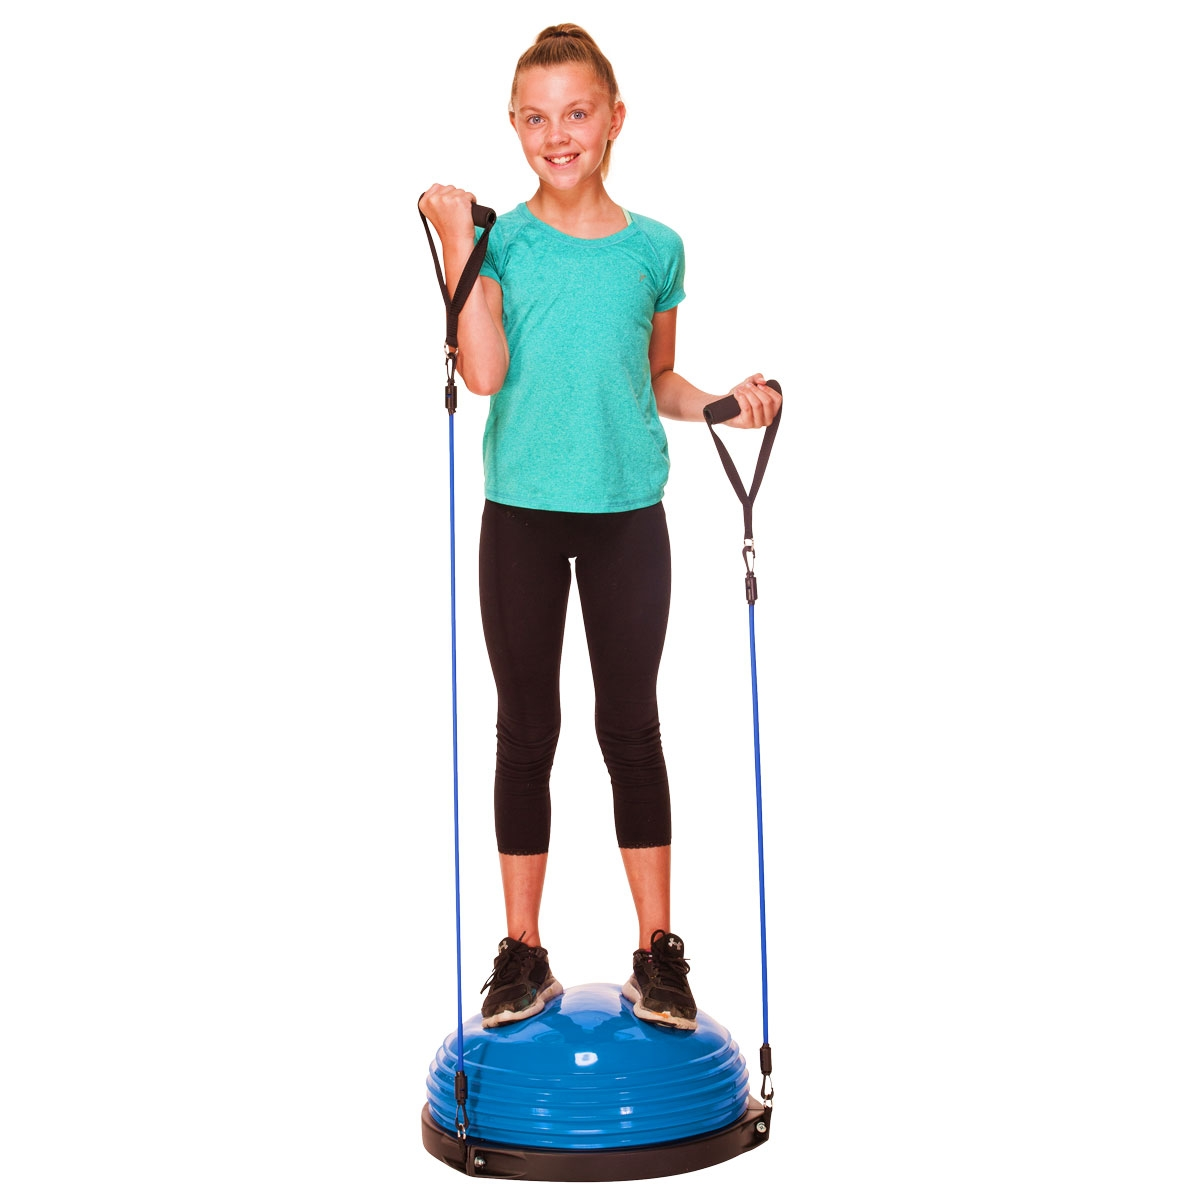 girl standing on blue balance dome trainer curling arm exercises